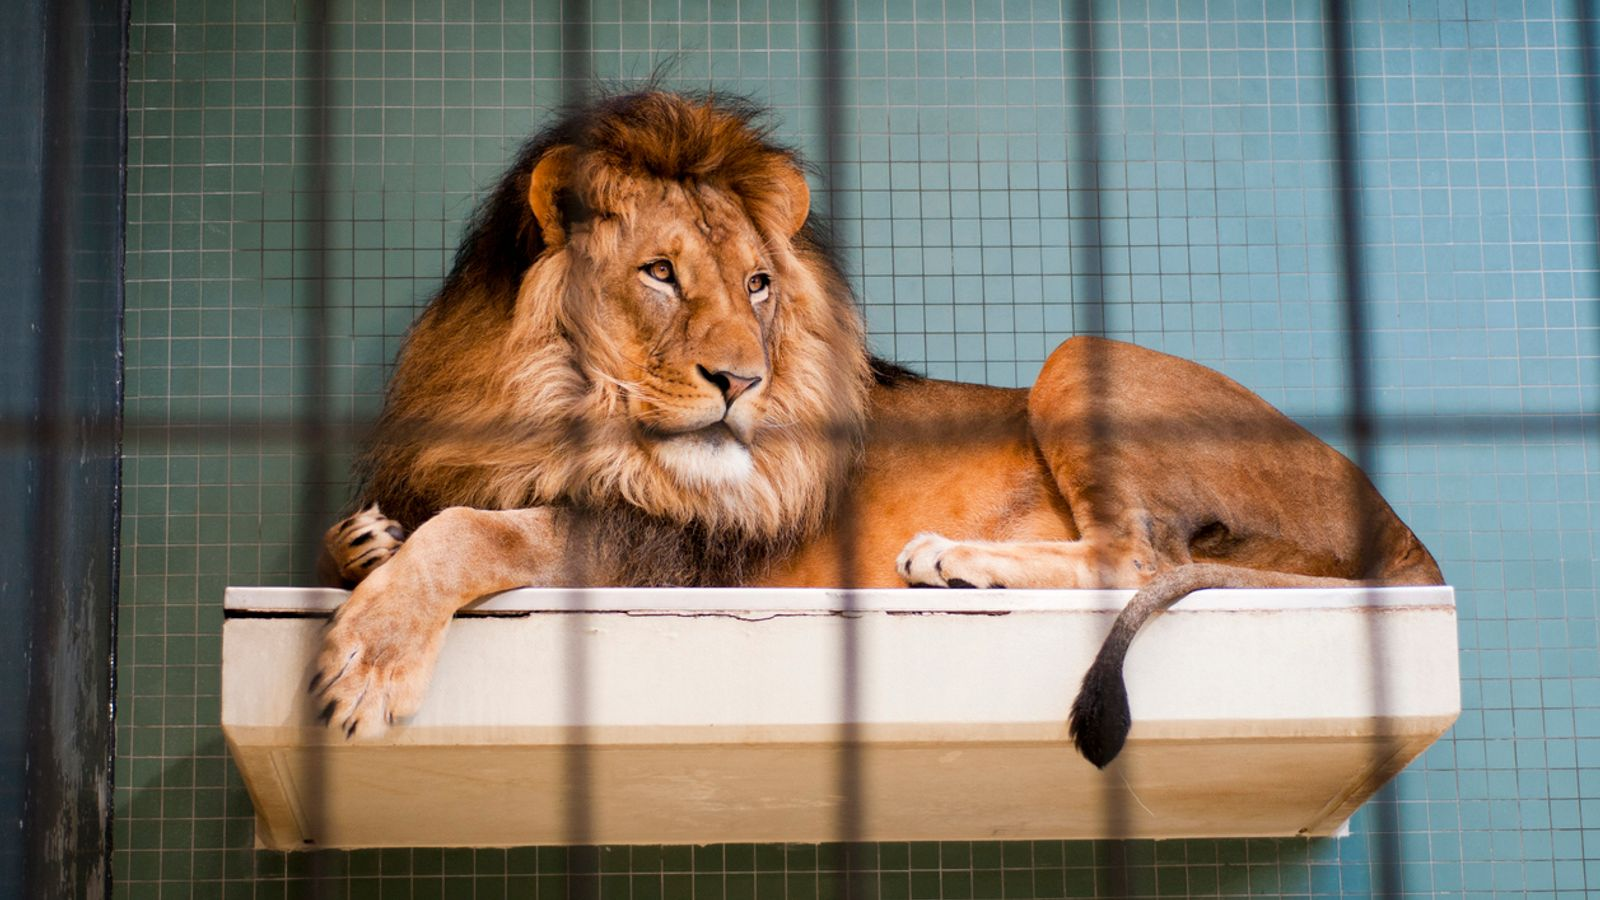 'Harrowing' attack by lions leaves zookeeper with serious head and neck wounds